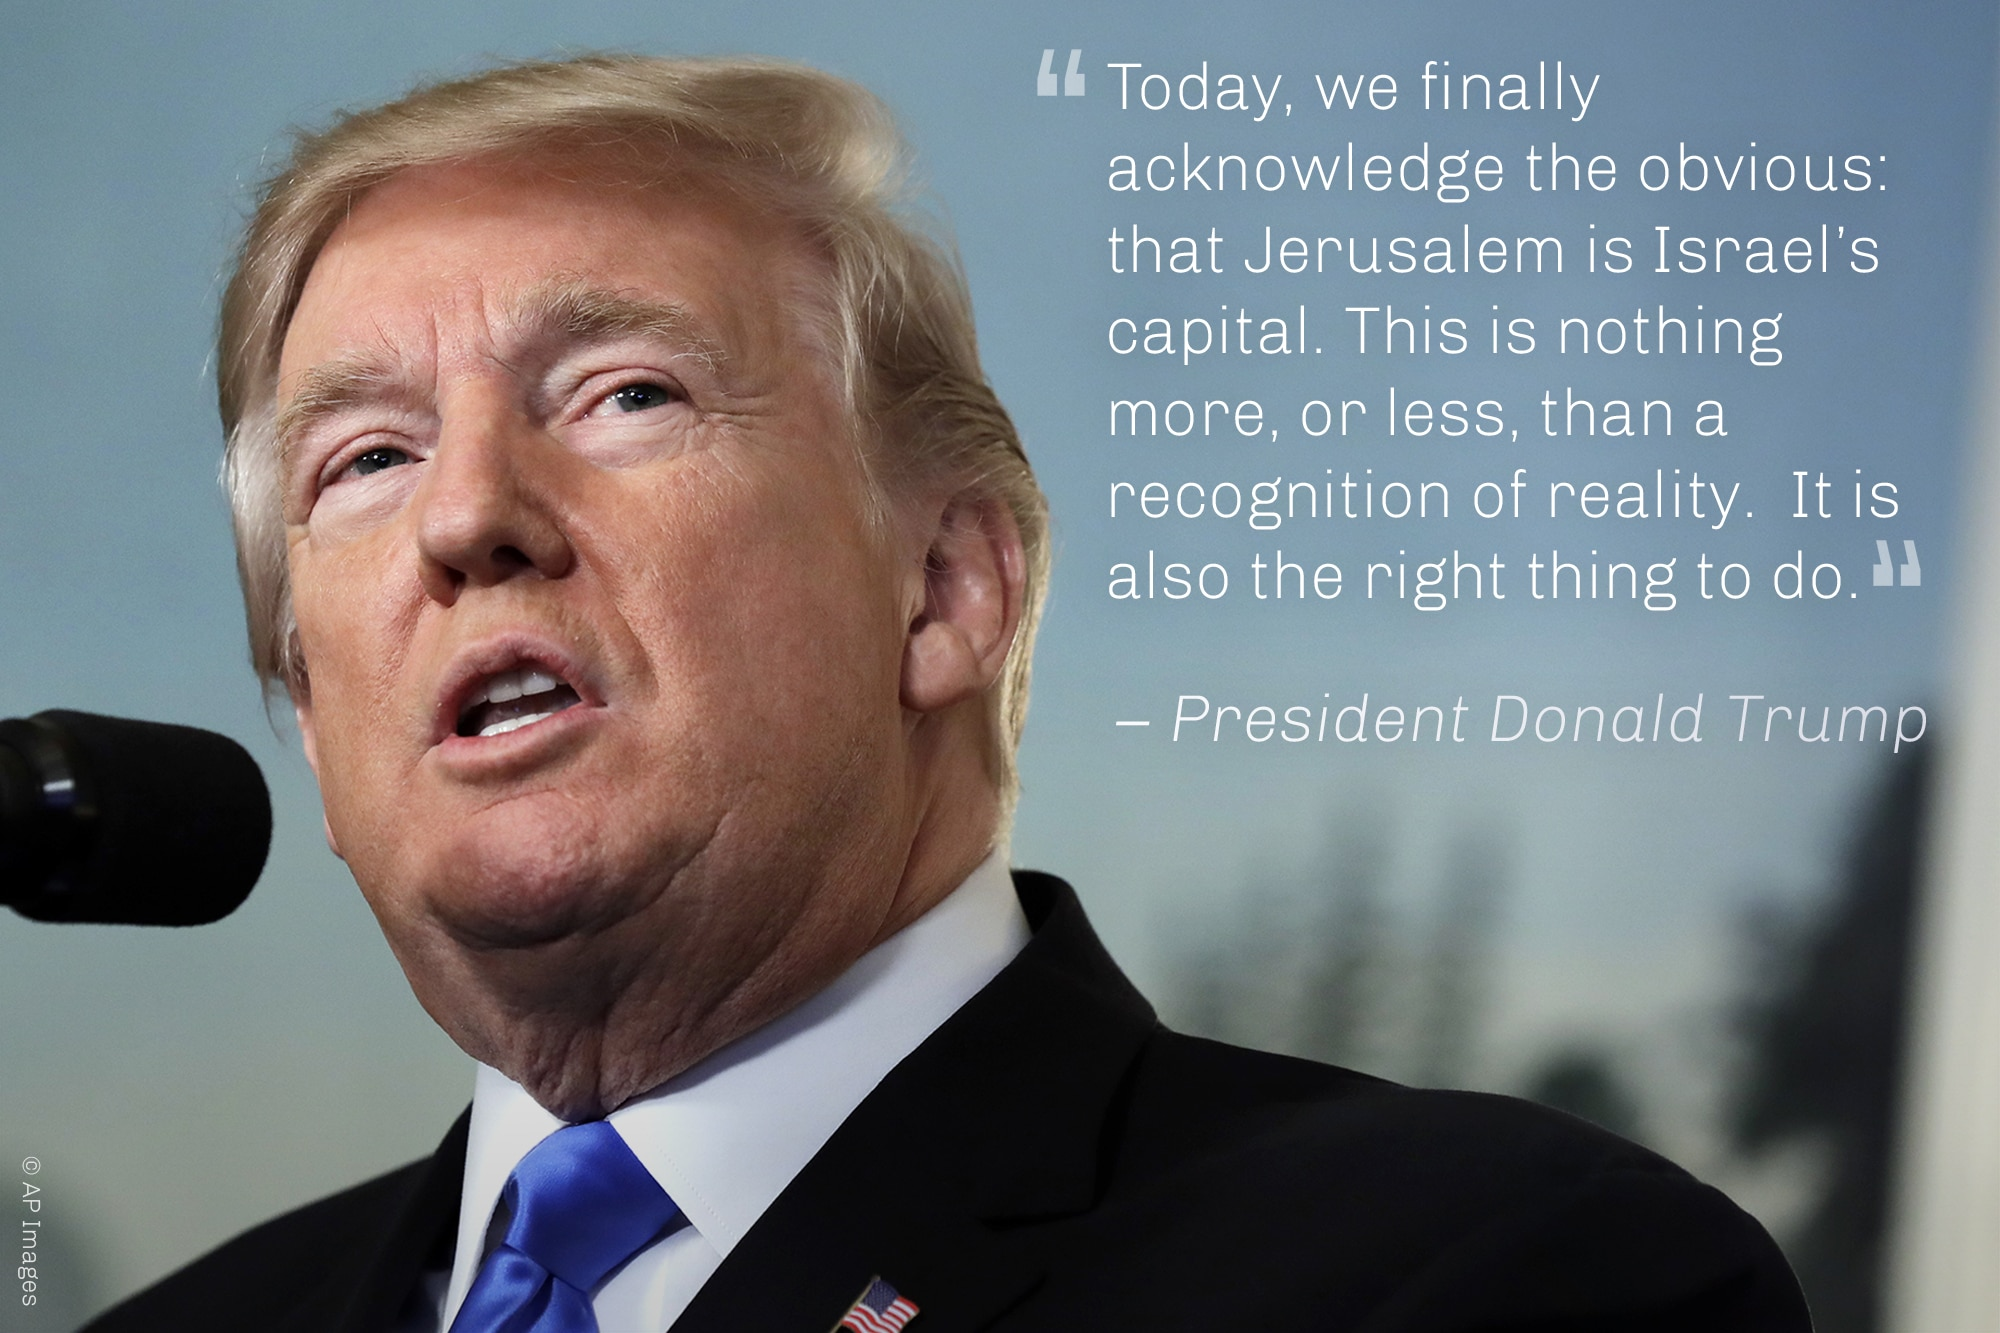 Quote from President Trump on Jerusalem as Israel's capital, with photo of Trump (© AP Images)